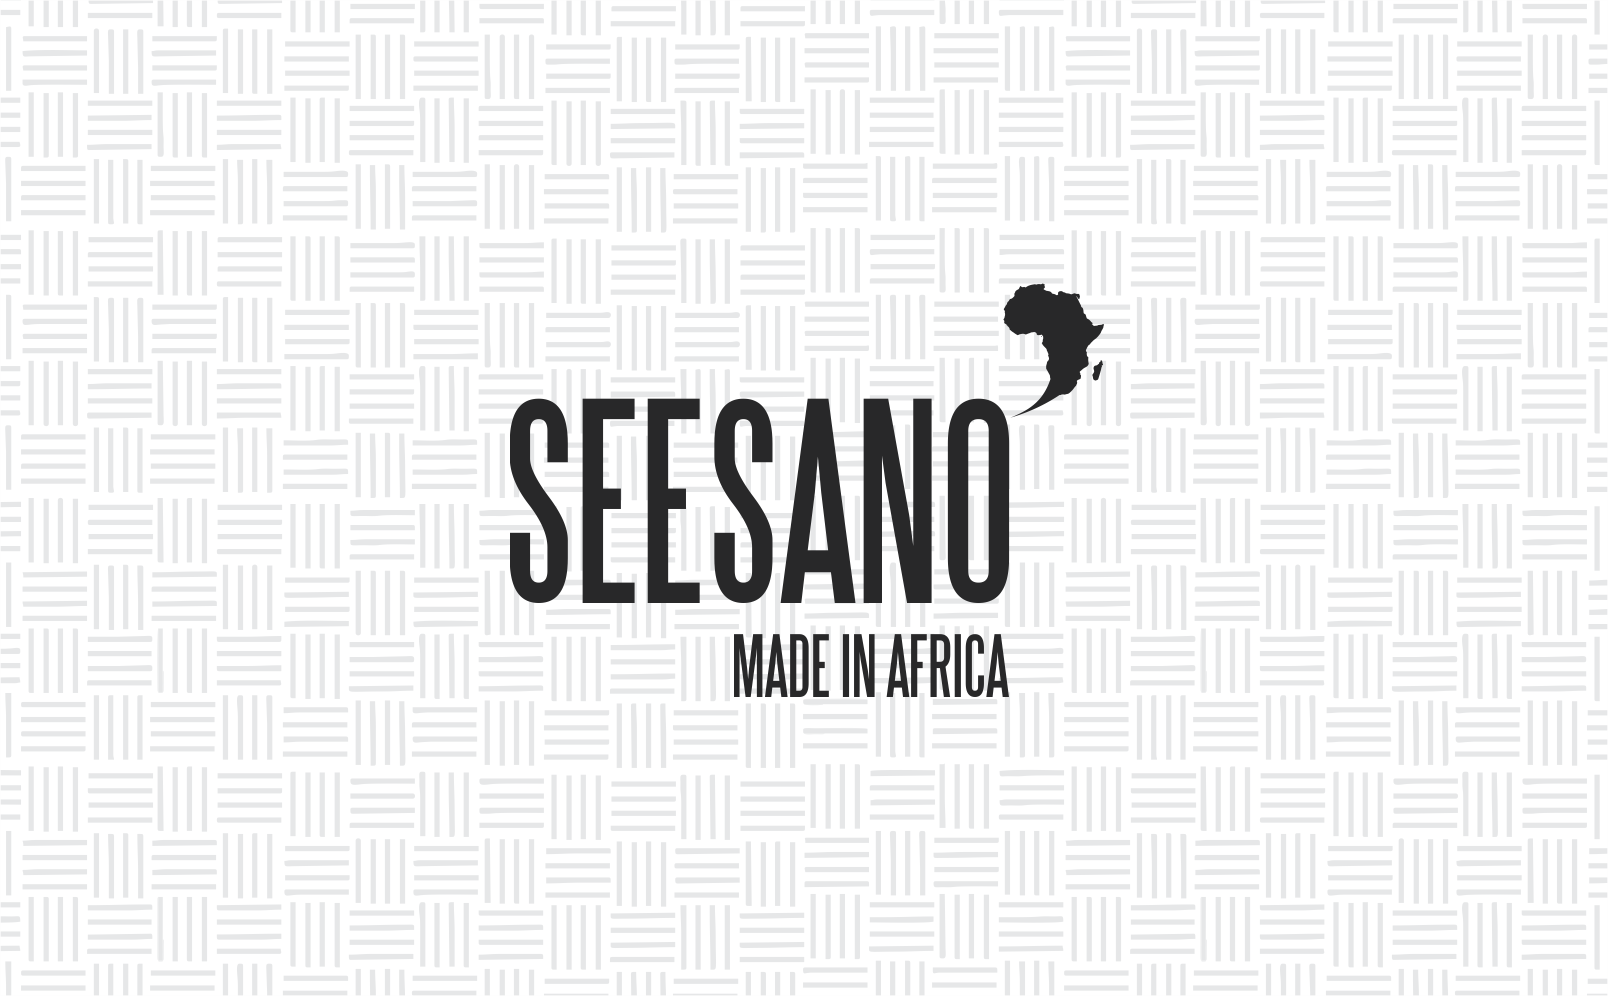 Seesano - Made in Africa